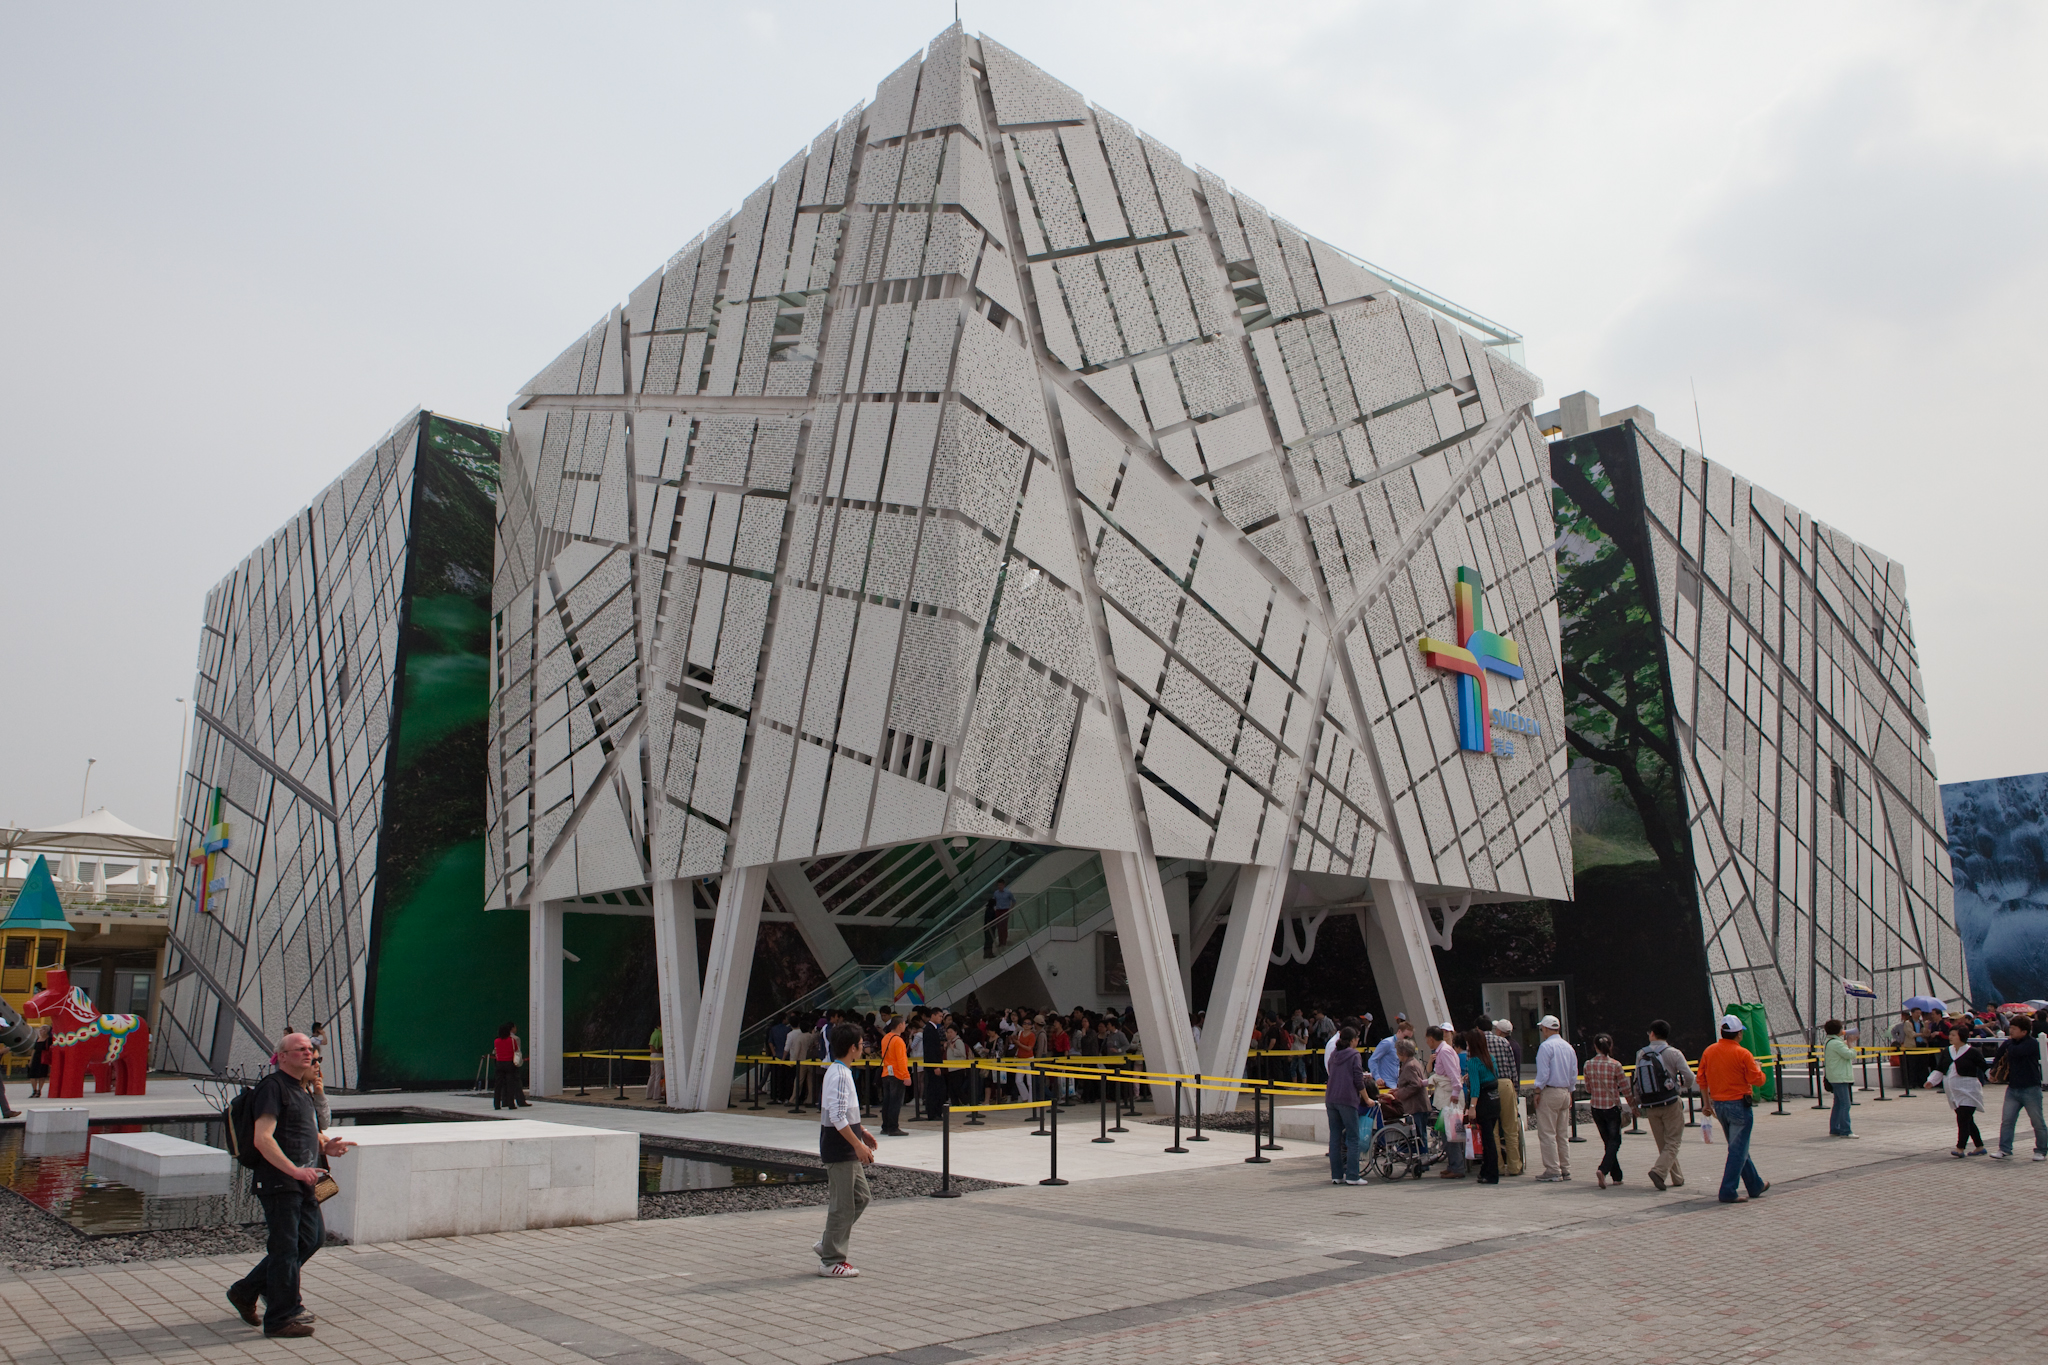 File:Sweden\u0027s Pavillion at the 2010 World Expo in Shanghai.jpg ...